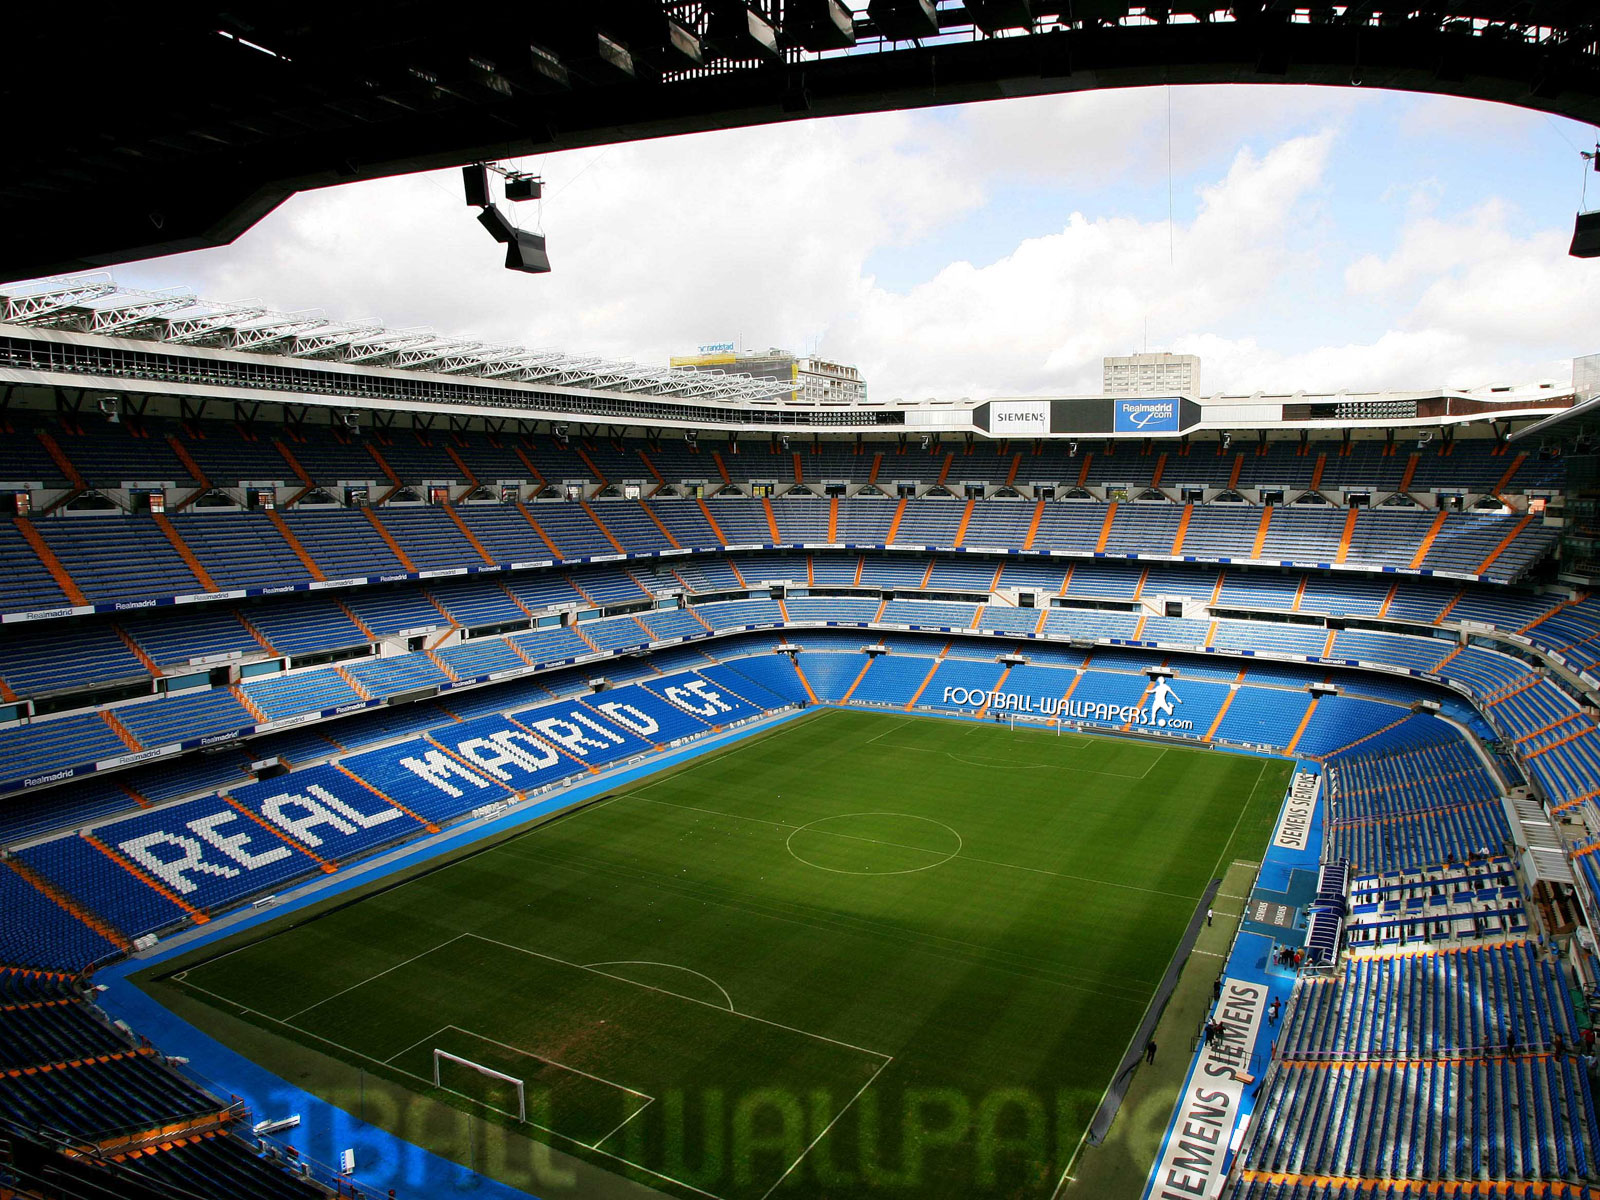 http://www.football-pictures.net/data/media/319/Santiago-Bernabeu-jpeg.jpg